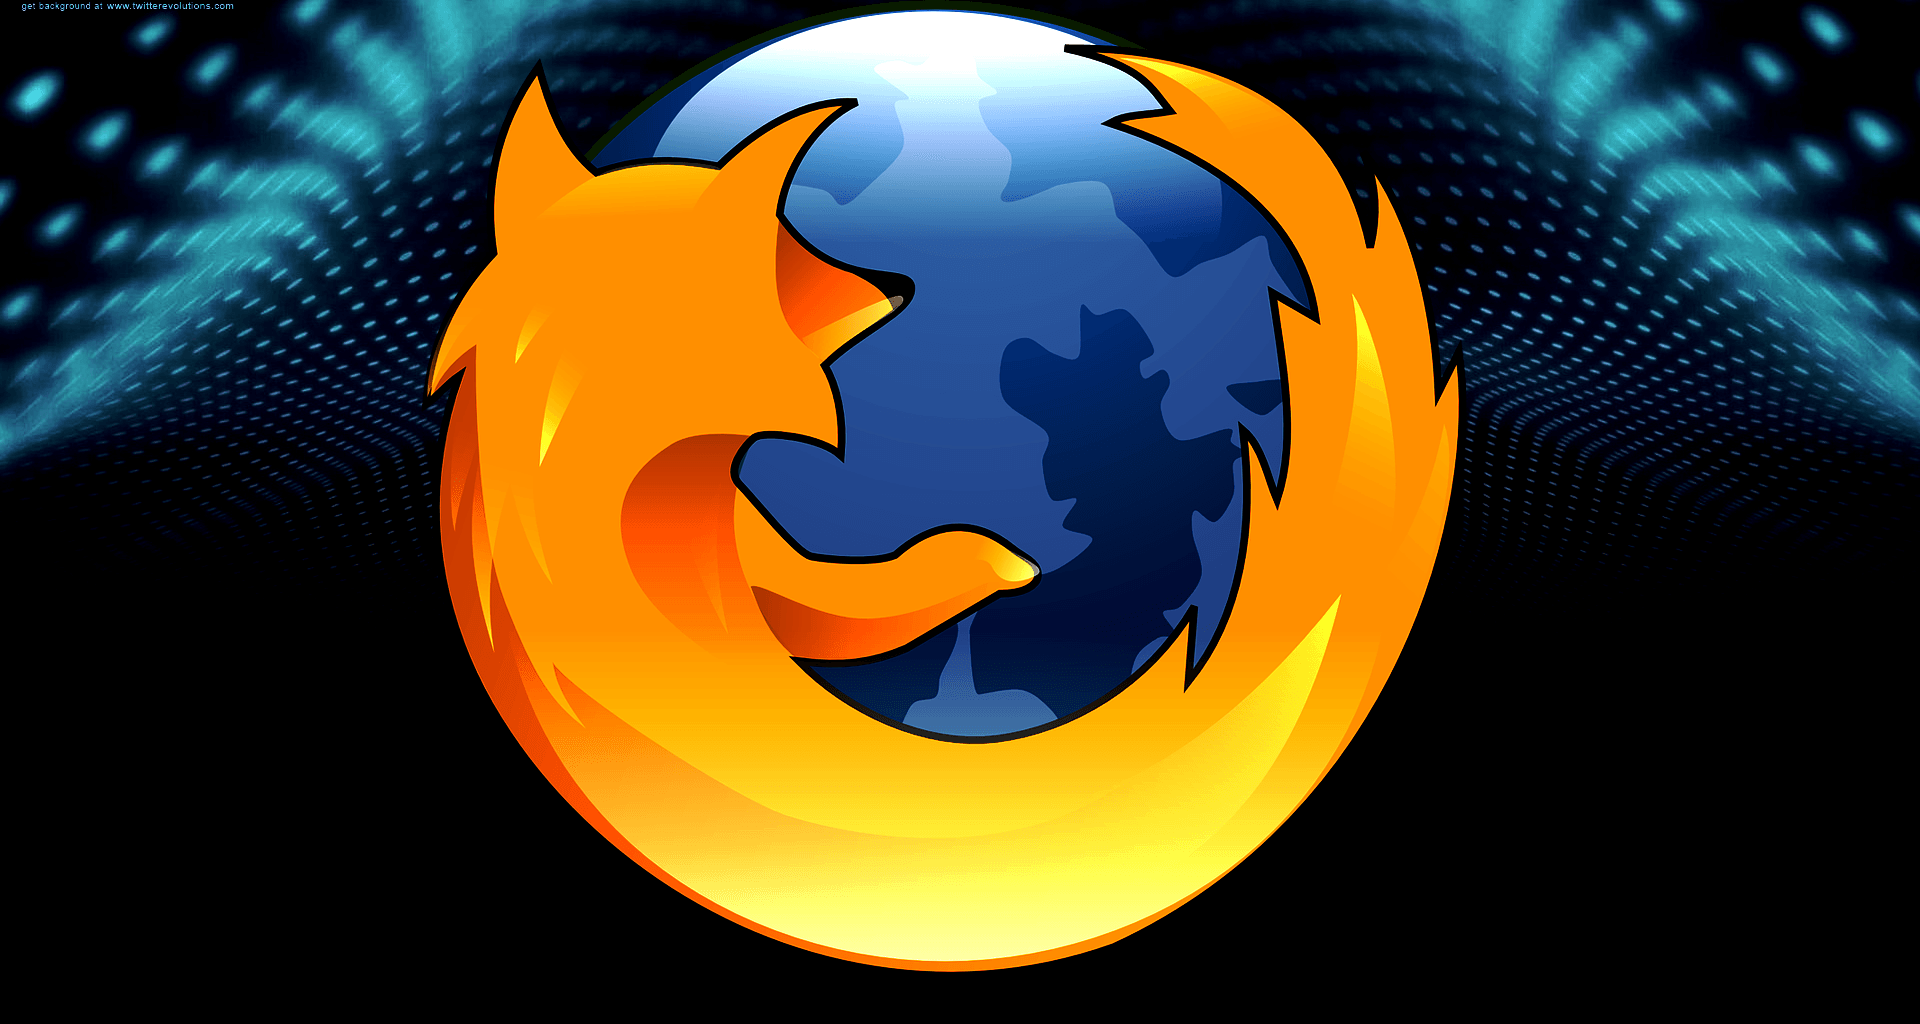 Mozilla Firefox securiy add-ons